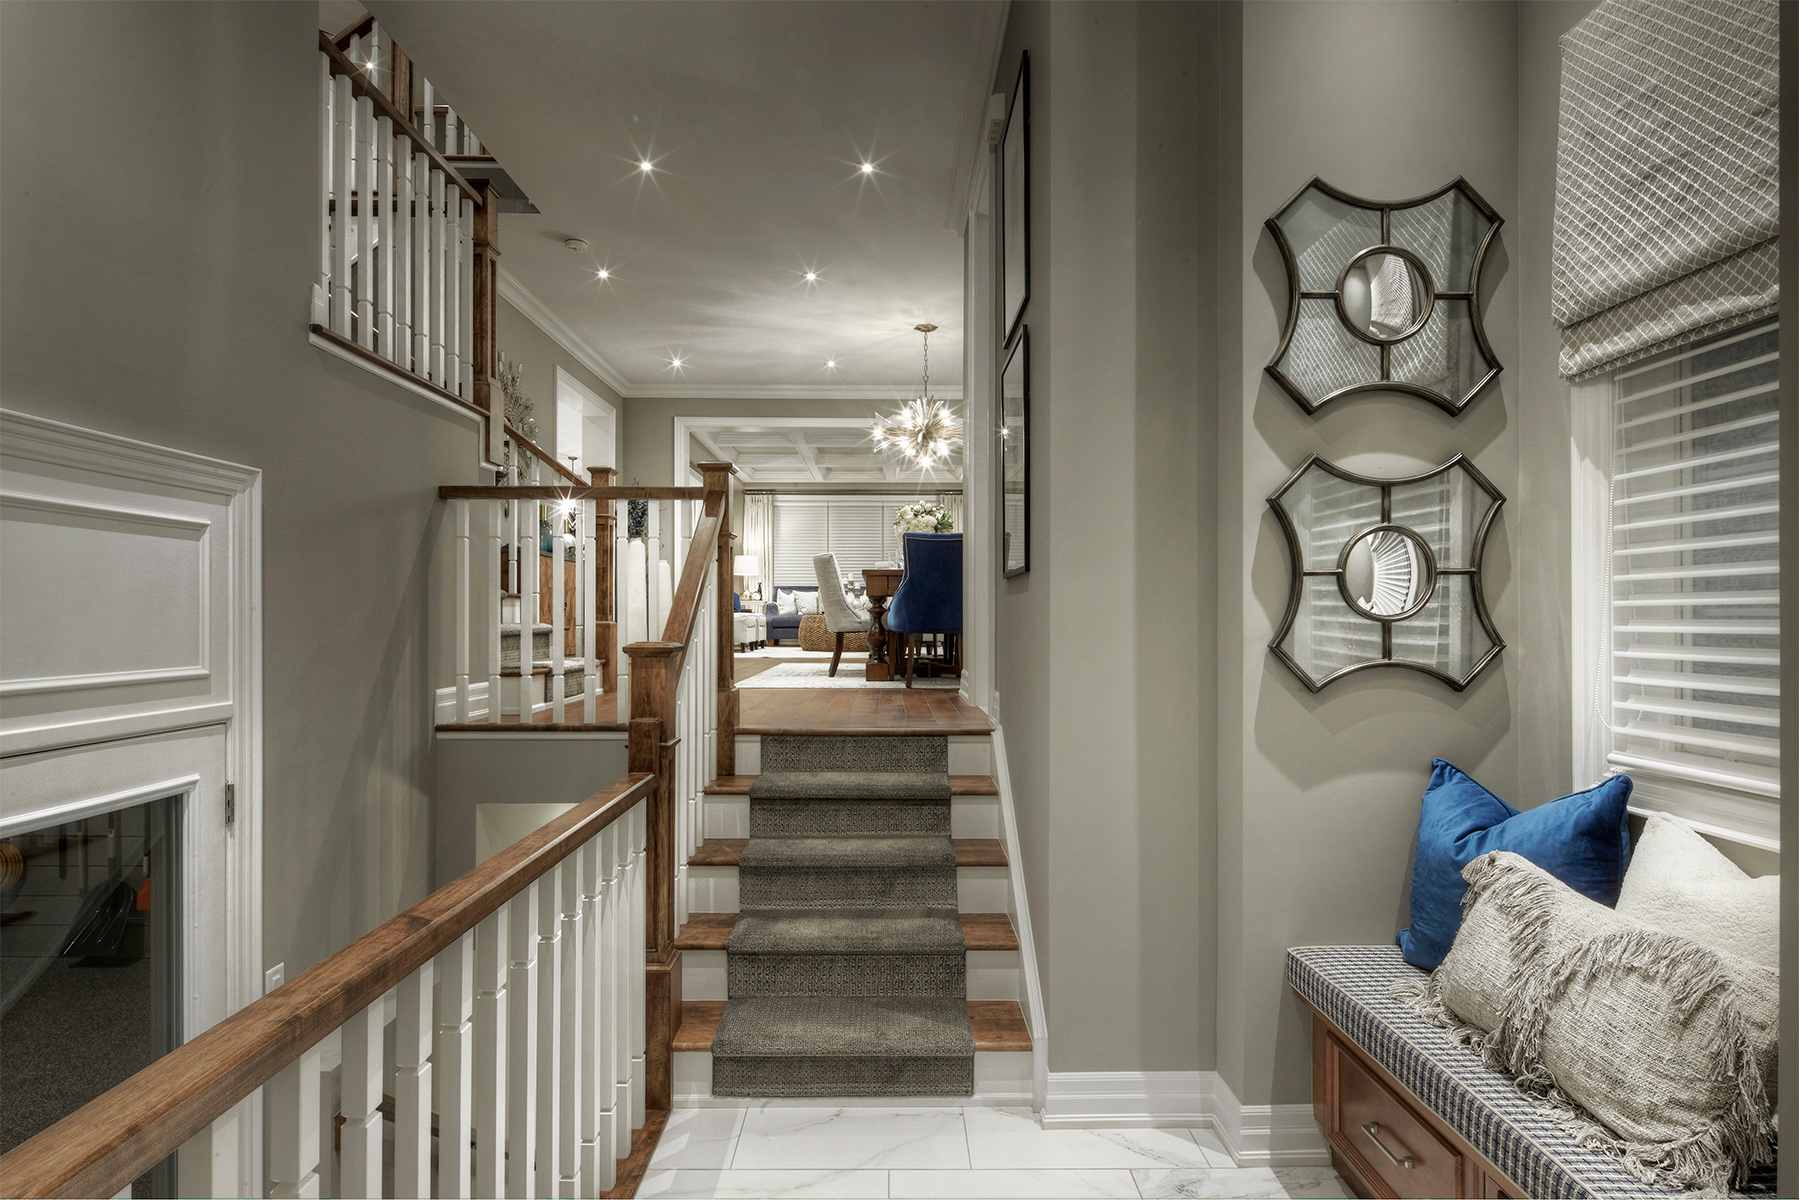 Kingsley Plan Stairs at Upper Joshua Creek in Oakville Ontario by Mattamy Homes